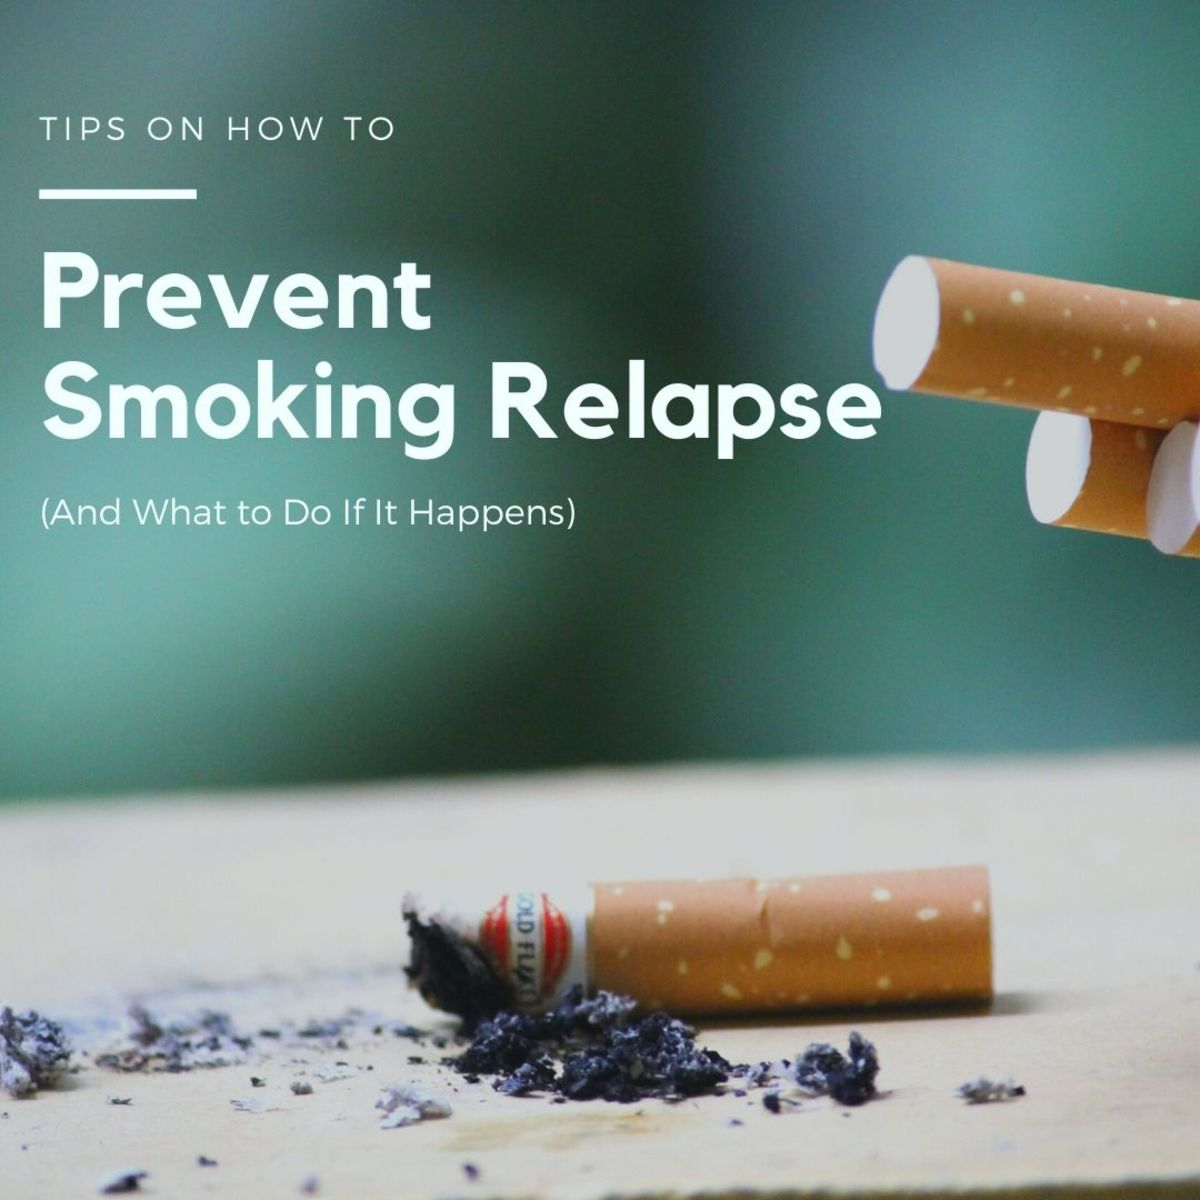 Tips on How to Avoid Smoking Relapse (And What to Do If It Happens)